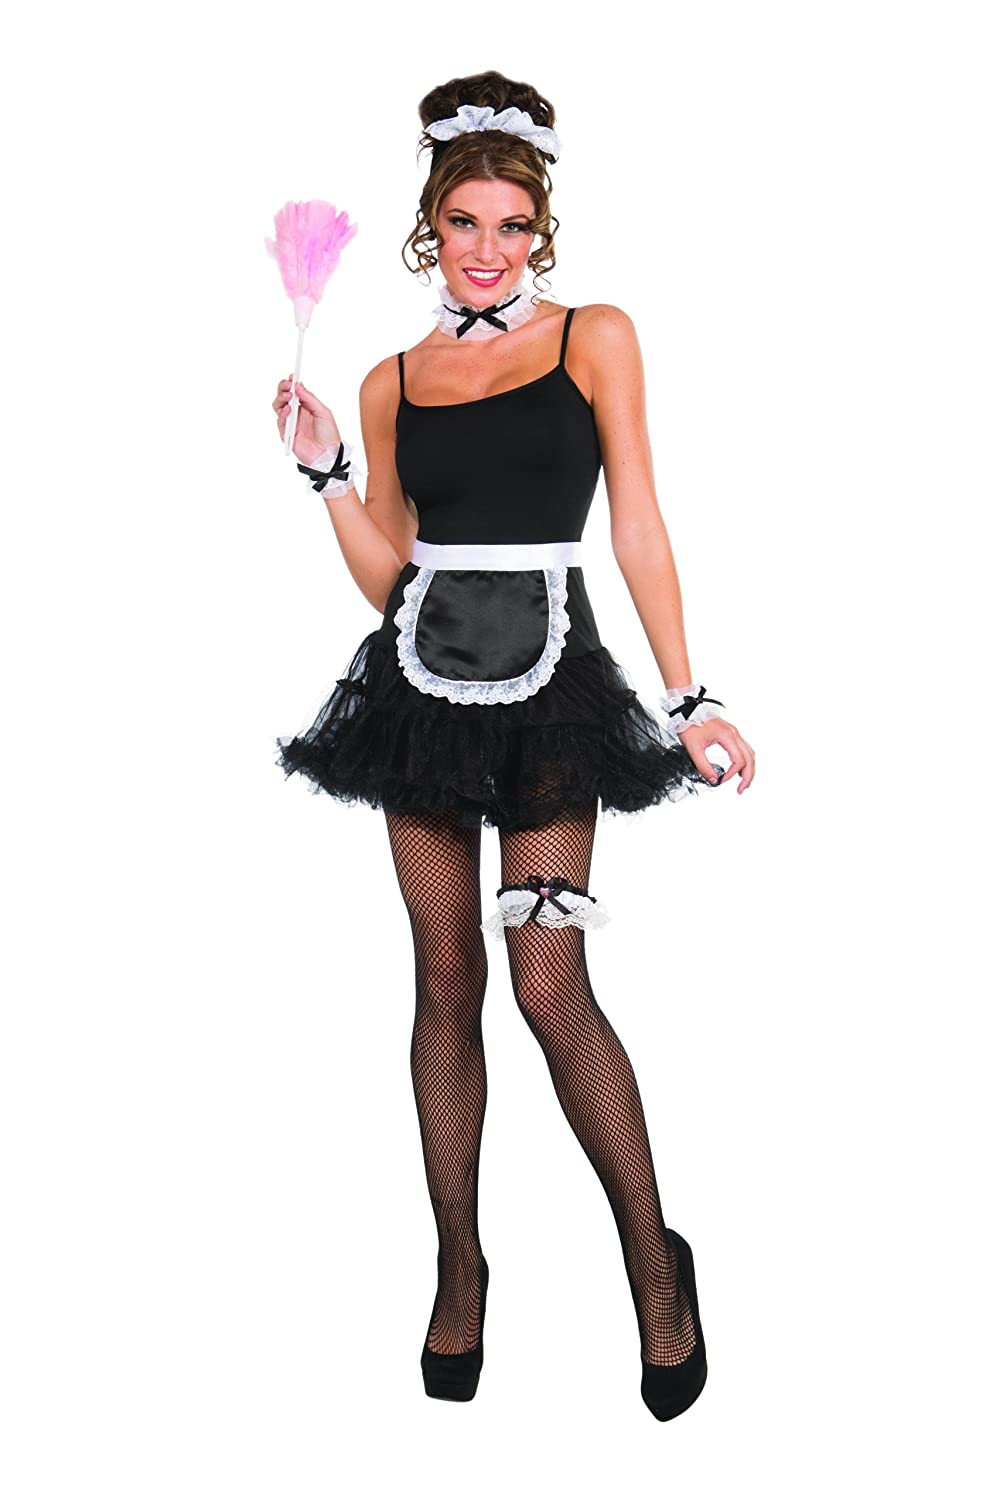 amazoncom french maid accessory kit clothing - Accessories For Halloween Costumes